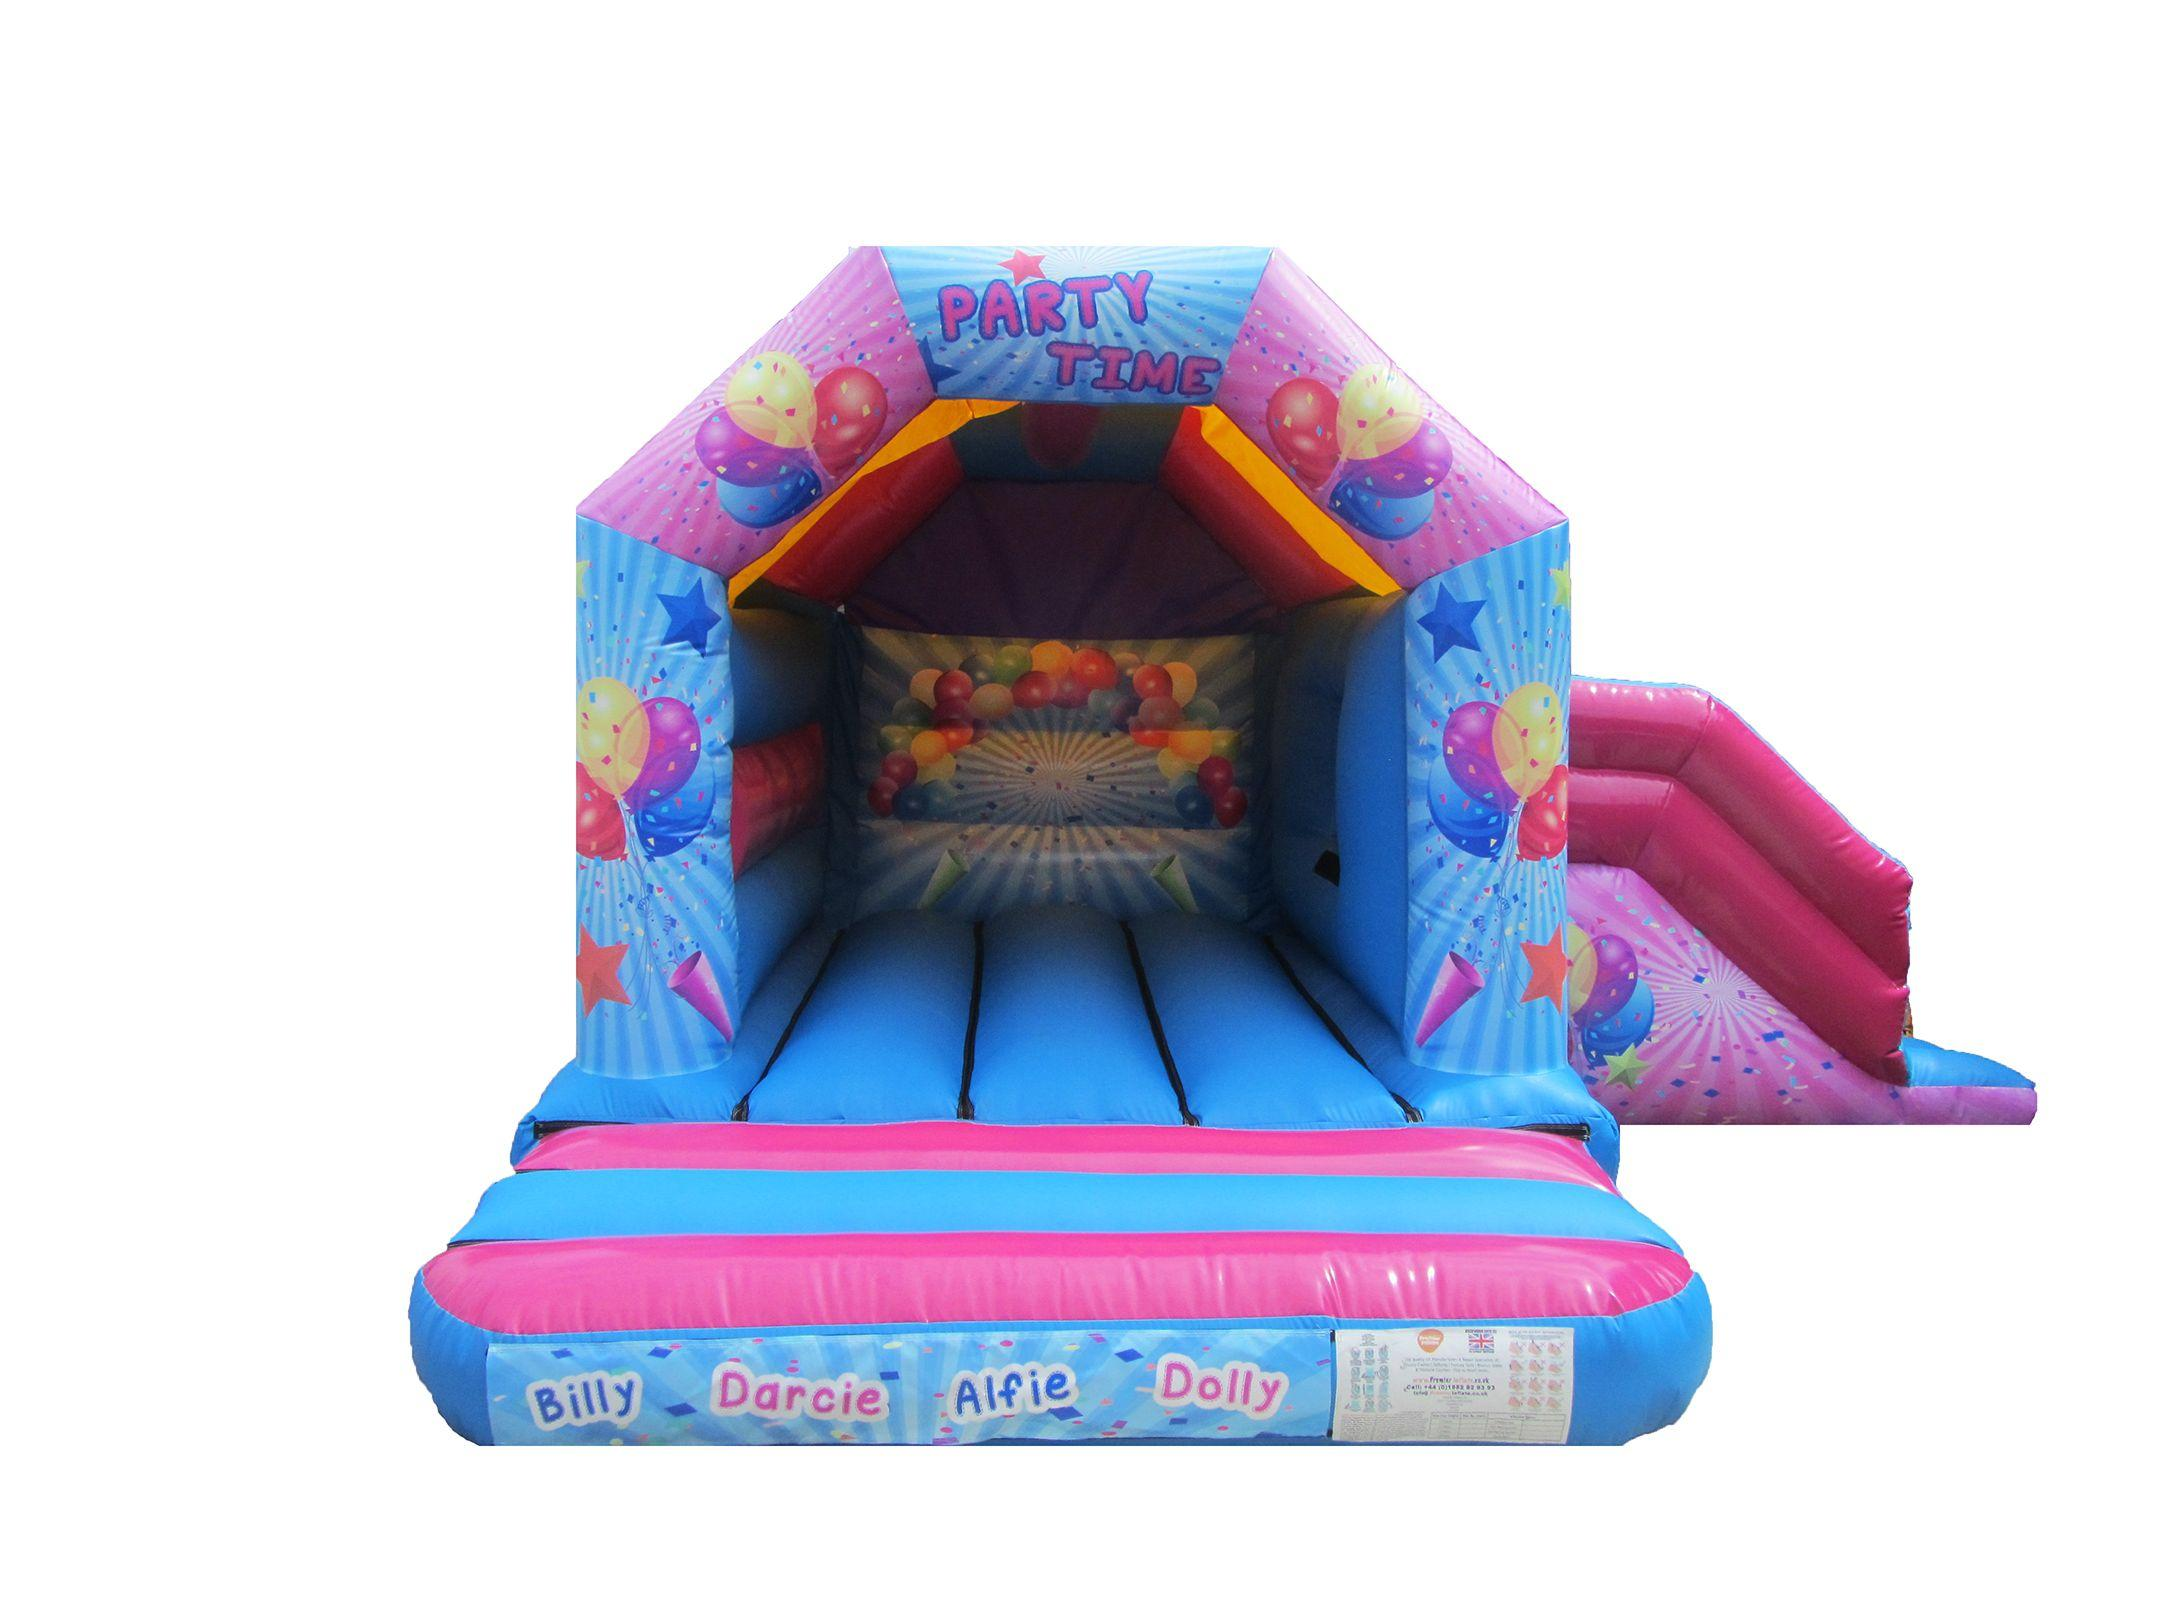 Party Themed Combi Bouncy Castle